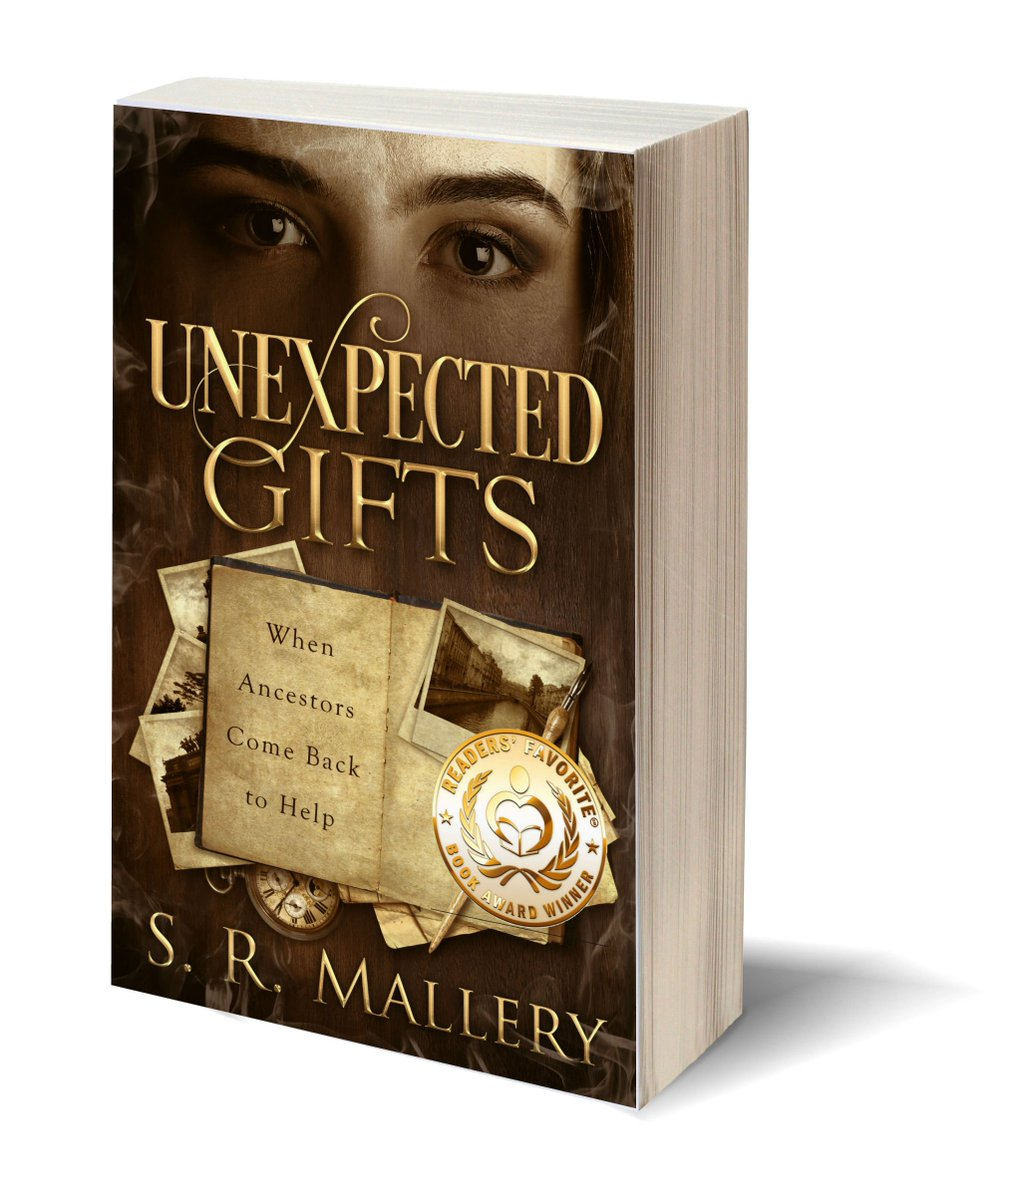 ★UNEXPECTED GIFTS★ ✔https://t.co/eFYe28J...